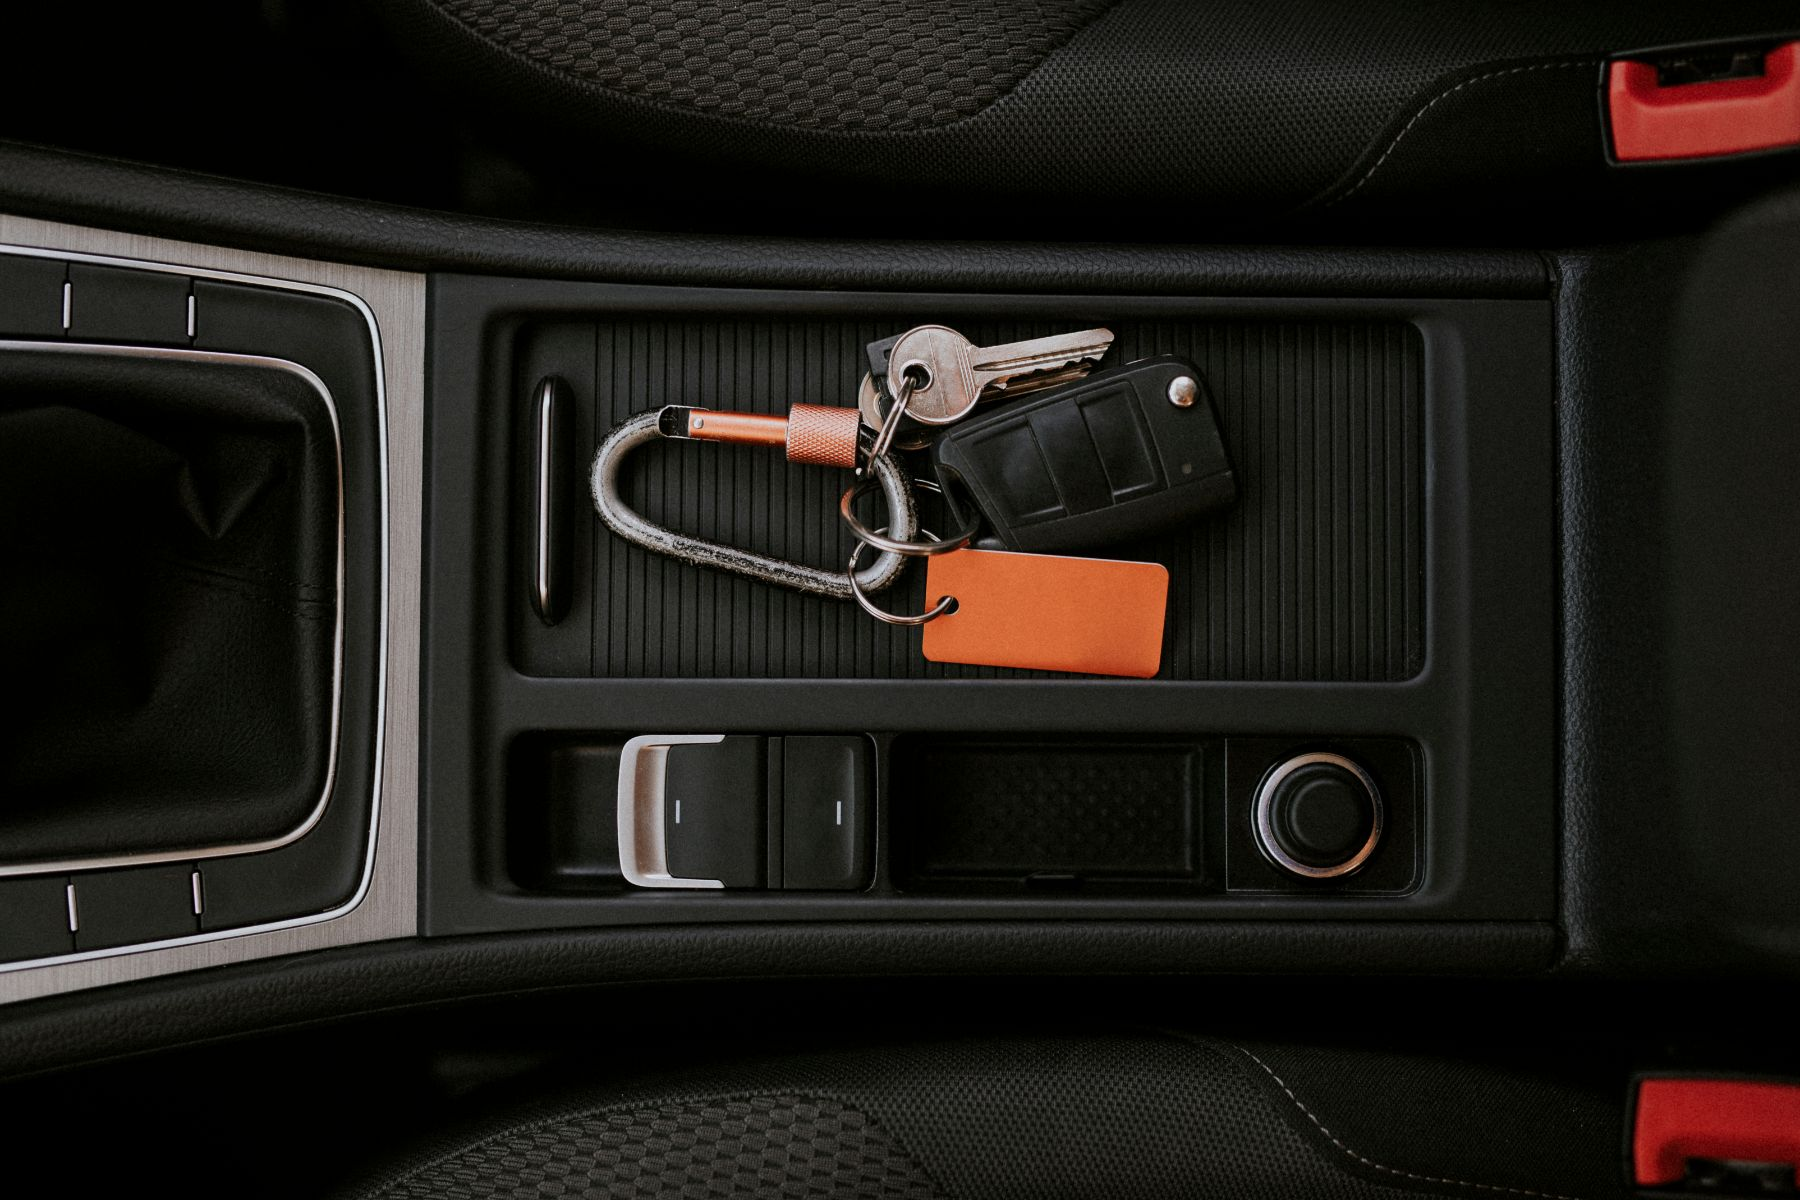 chave presencial keyless no console central do carro shutterstock